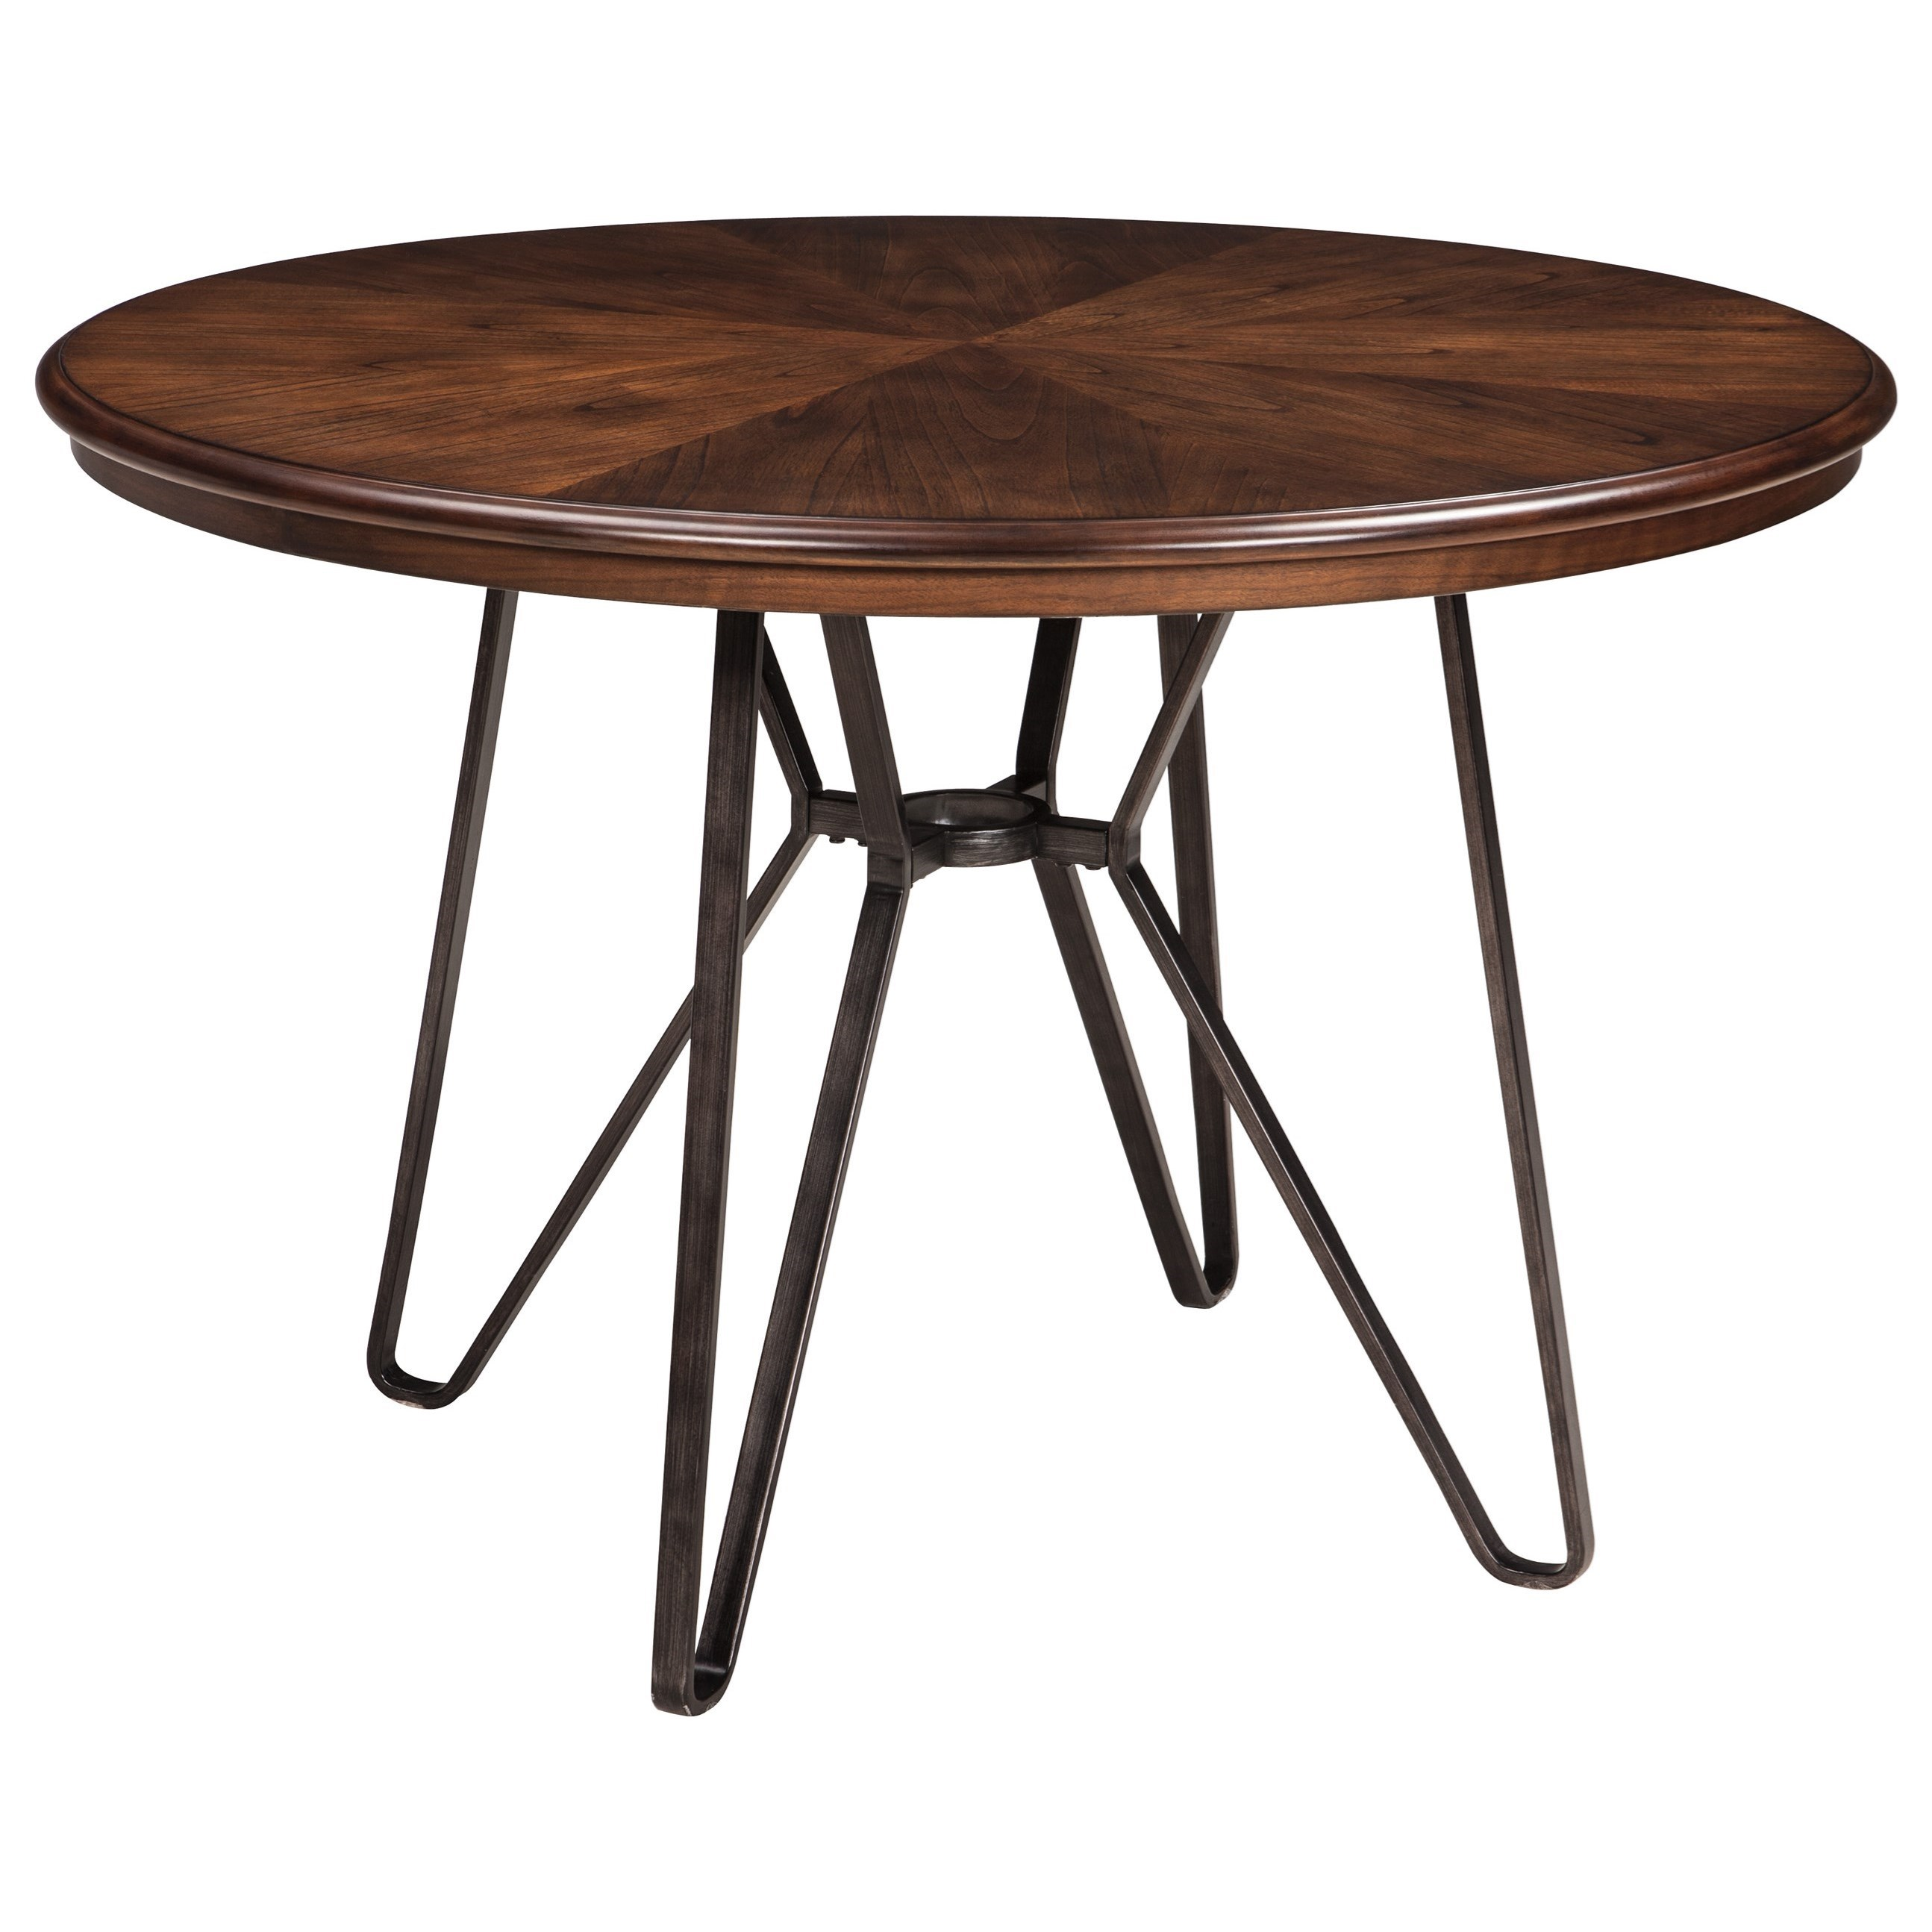 round dining room table with metal hairpin legs signature design products ashley color centiar leg accent industrial look end tables storage rustic looking target entryway